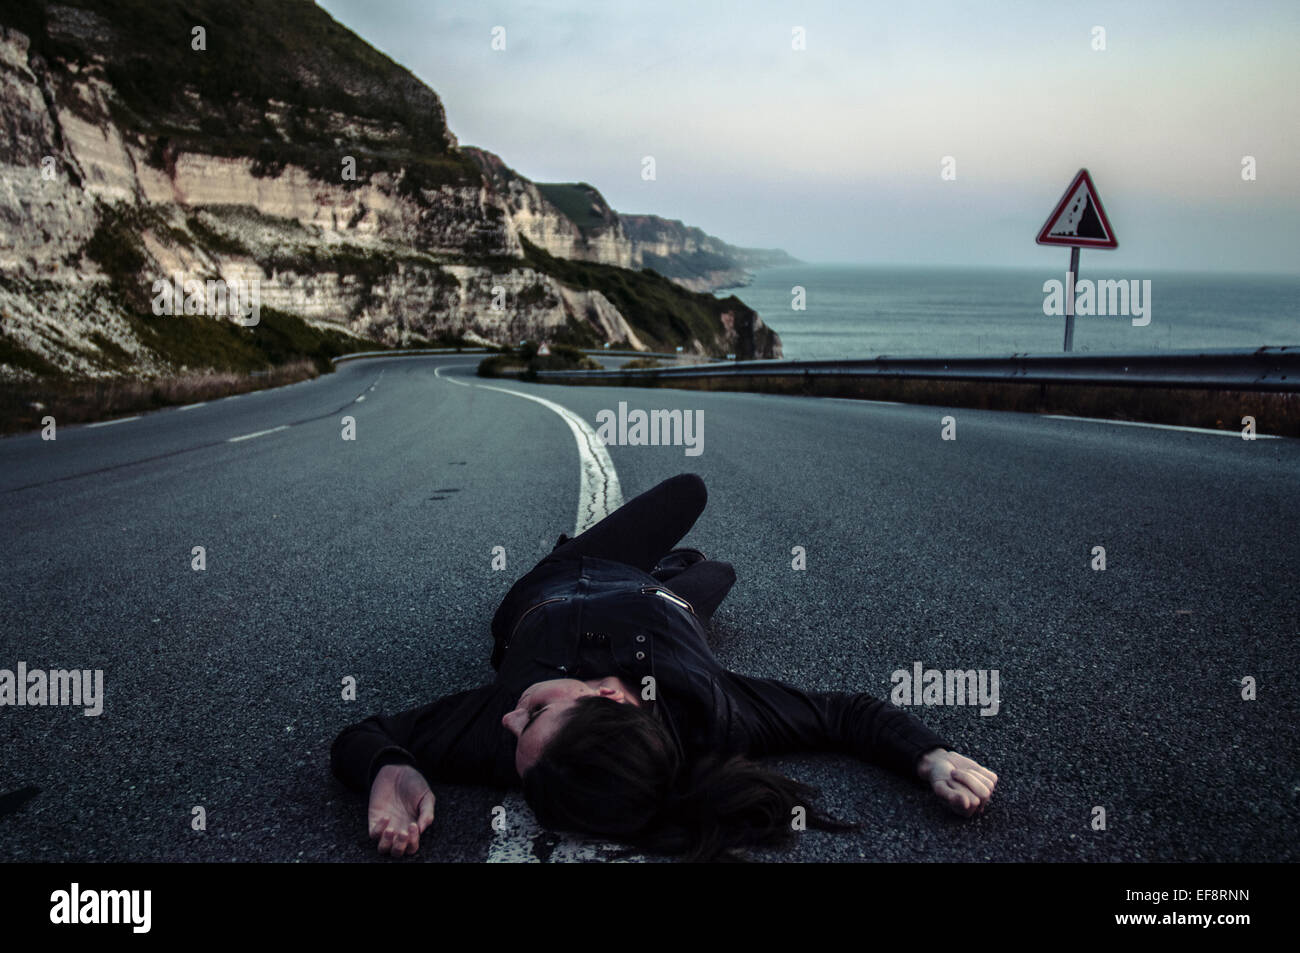 Woman lying down in middle of road - Stock Image